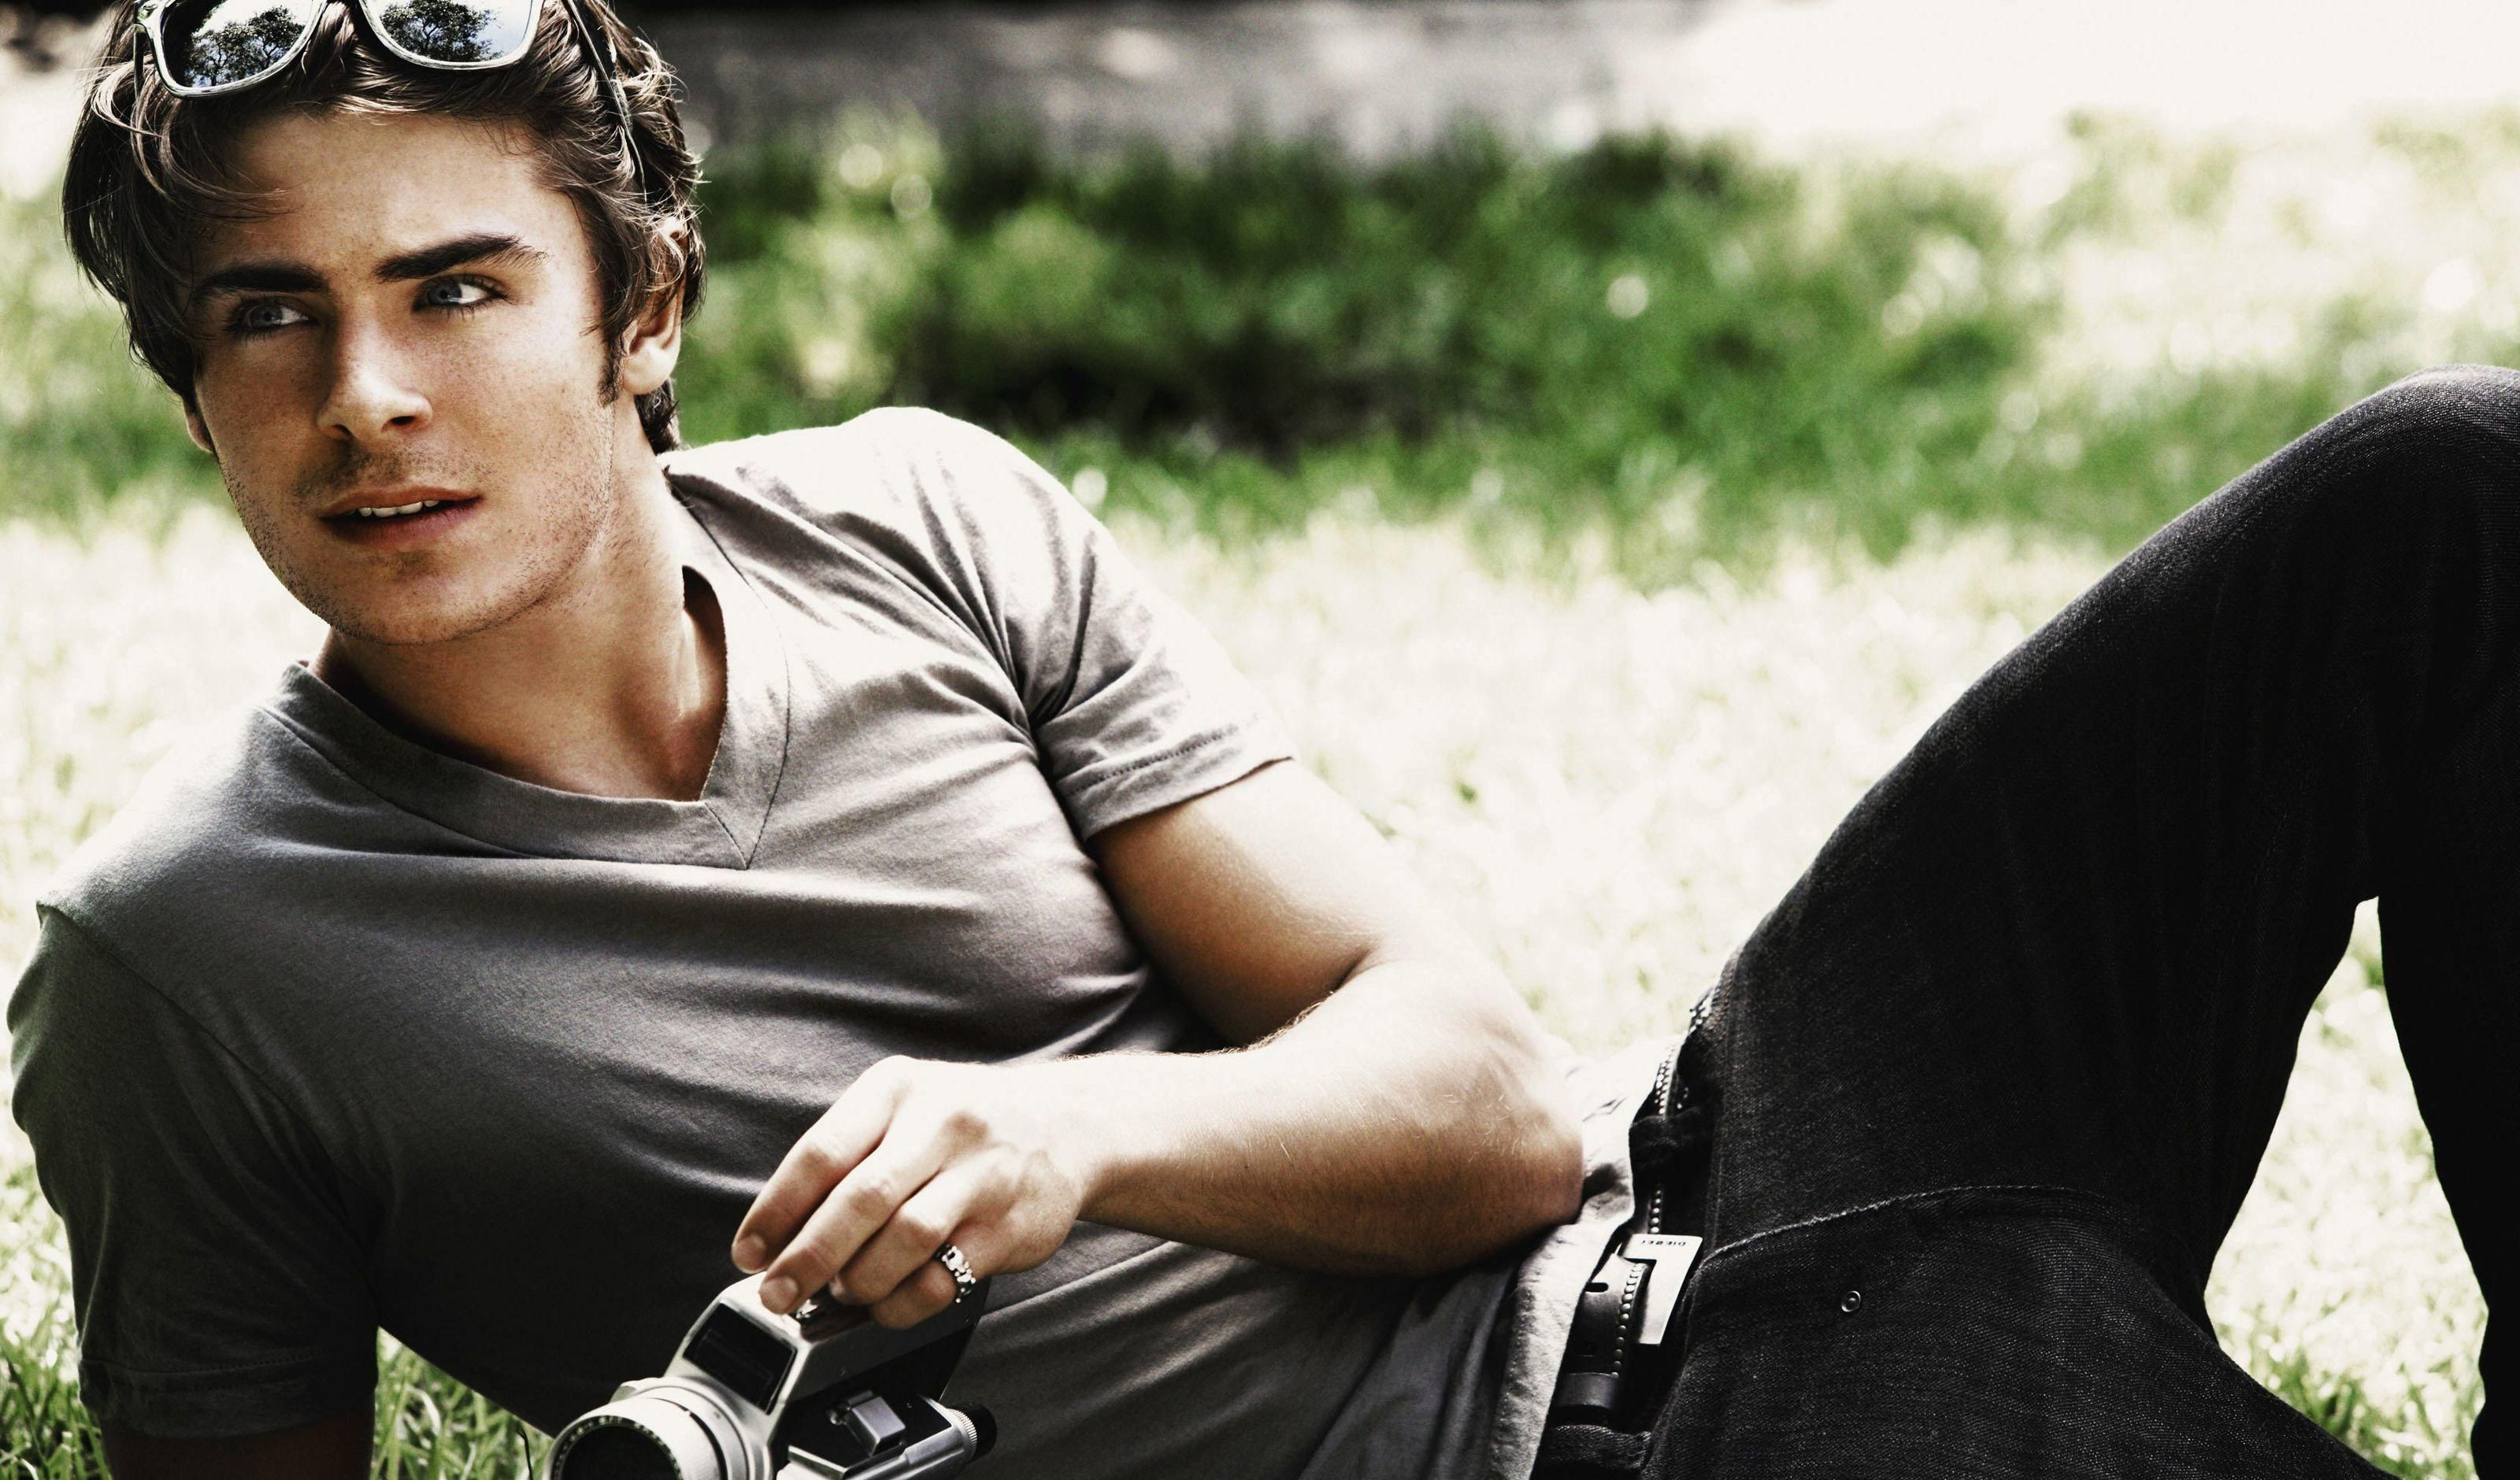 3200x1880 - Zac Efron Wallpapers 8